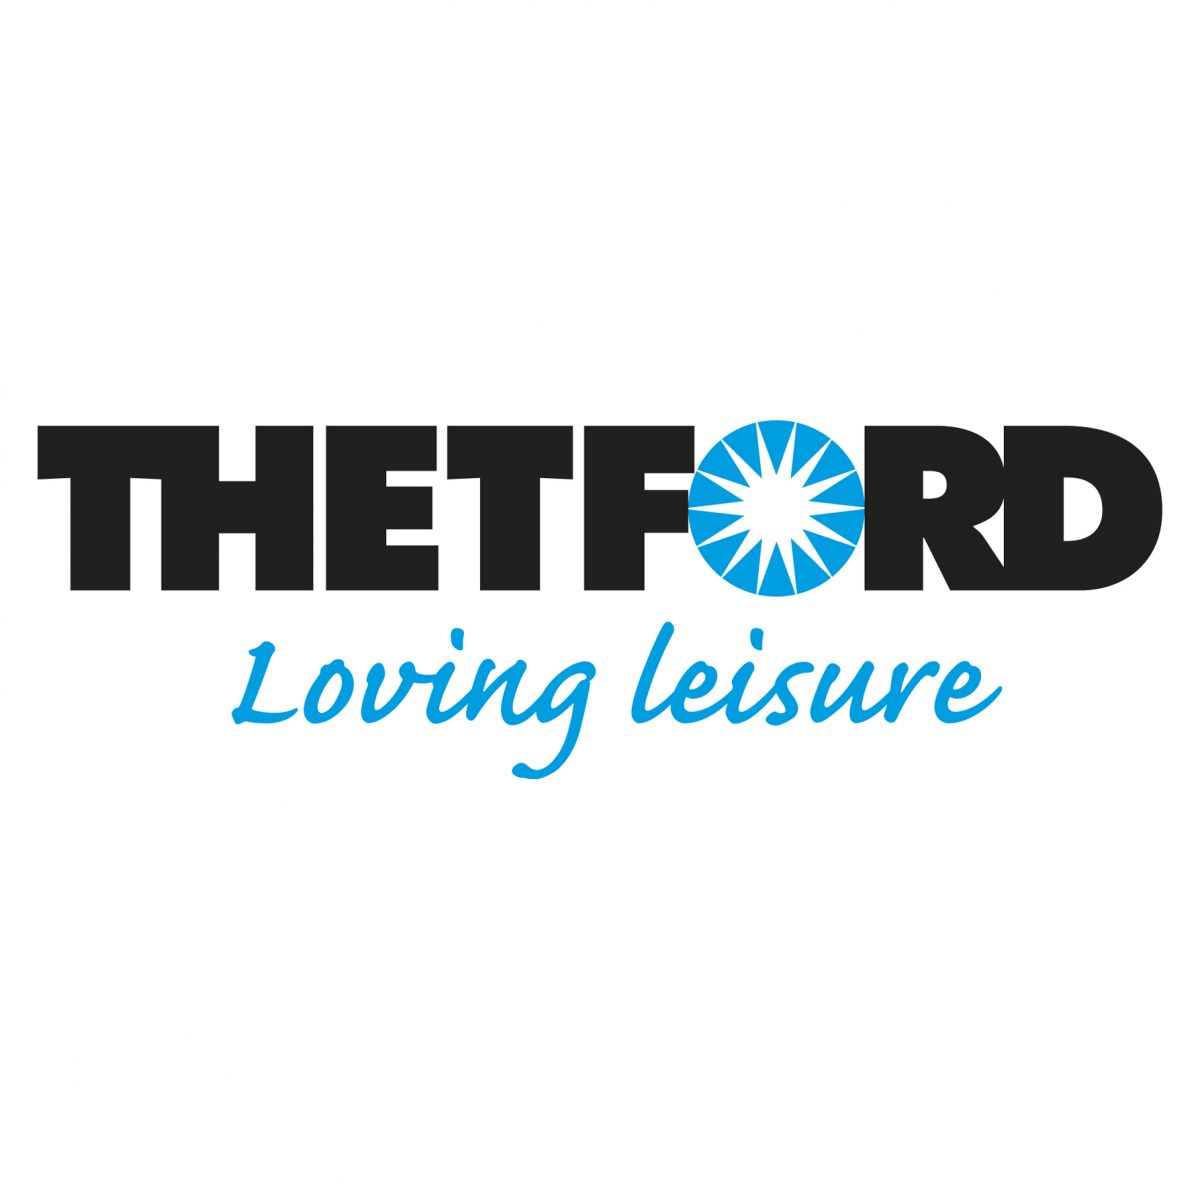 Thetford-Logo-Loving-Leisure-e1510927578844.jpg